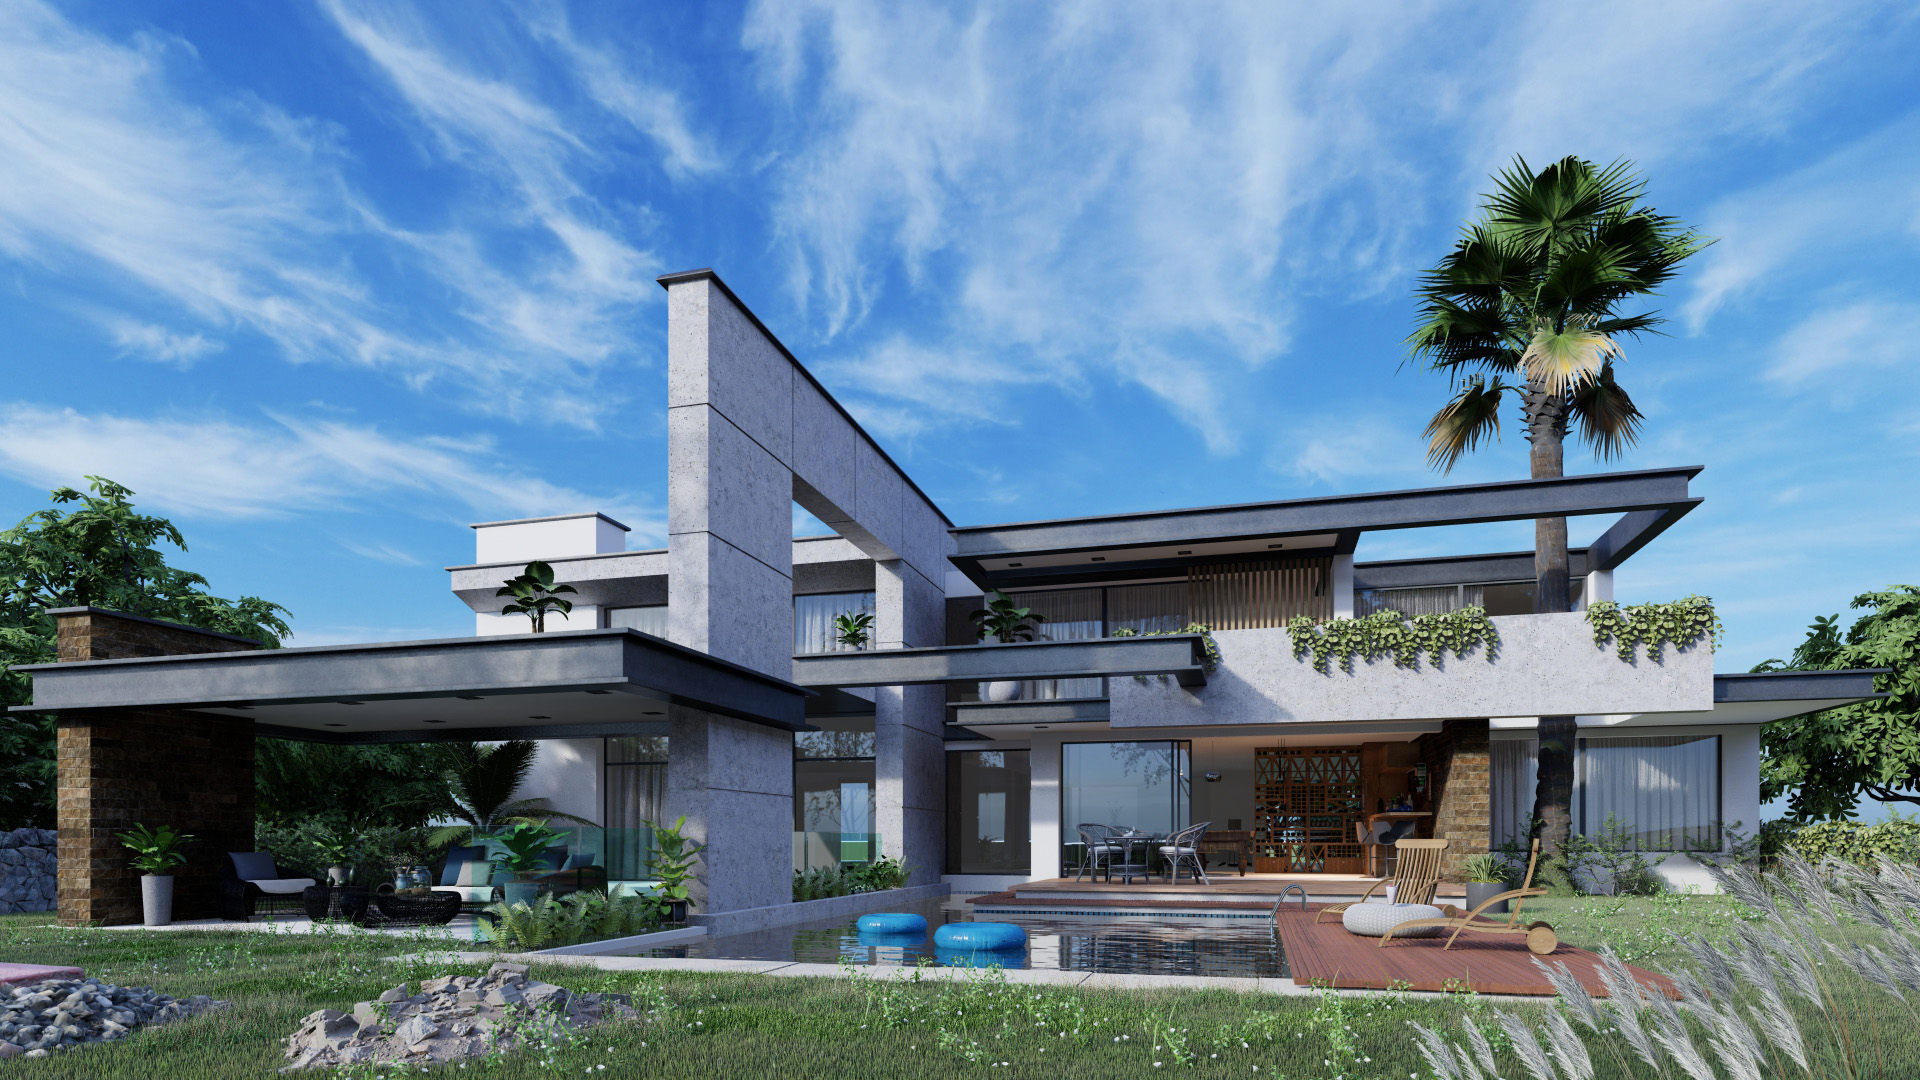 Real Sky Villa, rendered in Lumion by Gui